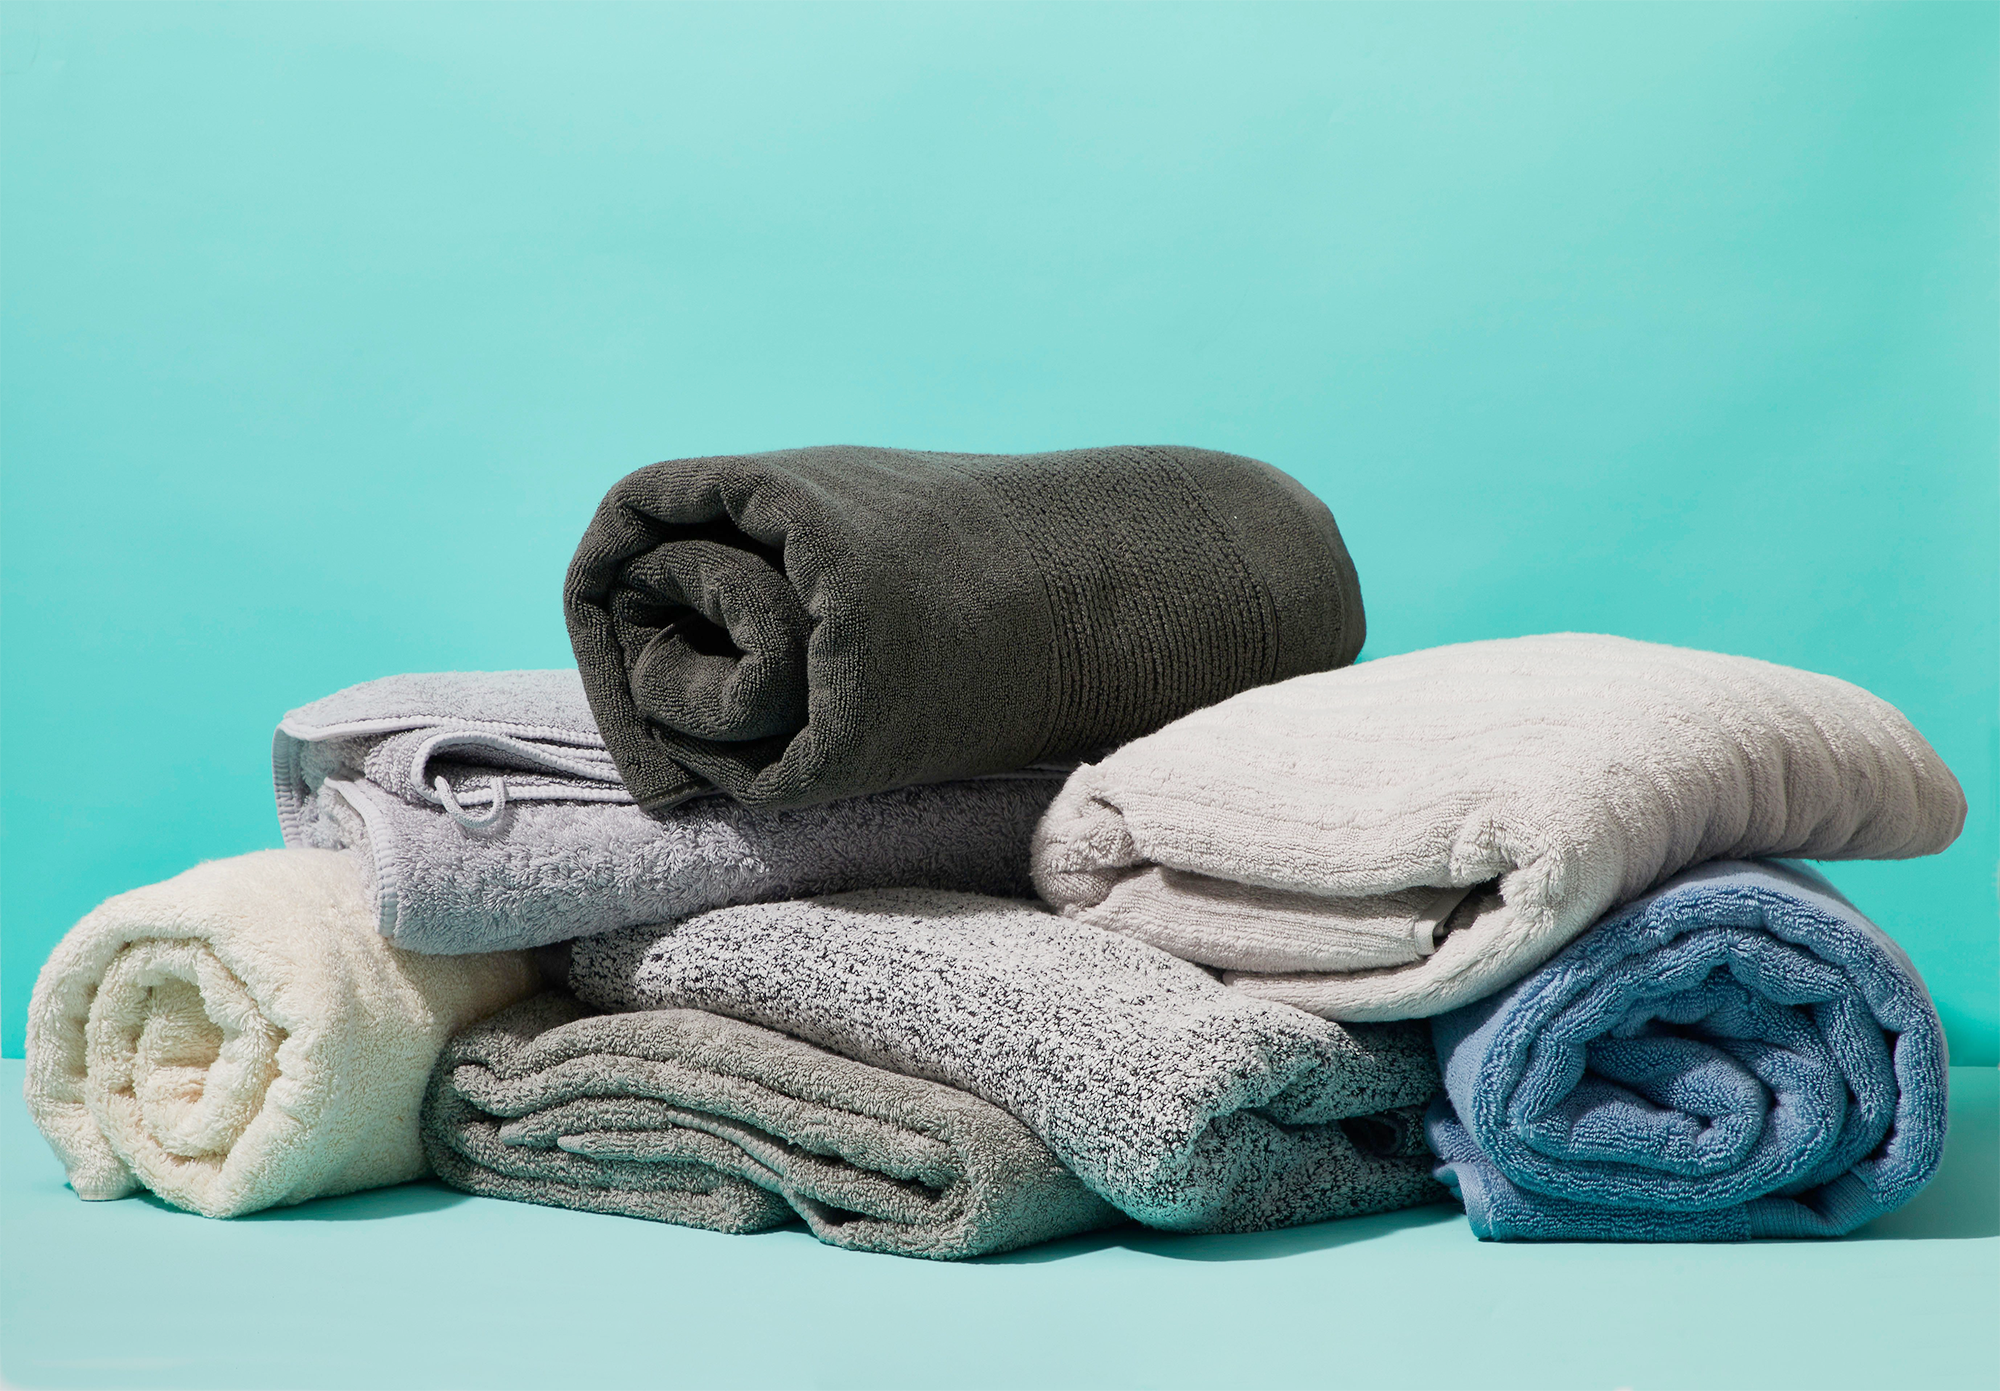 What Are The Benefits Of Owning a Bathrobe?